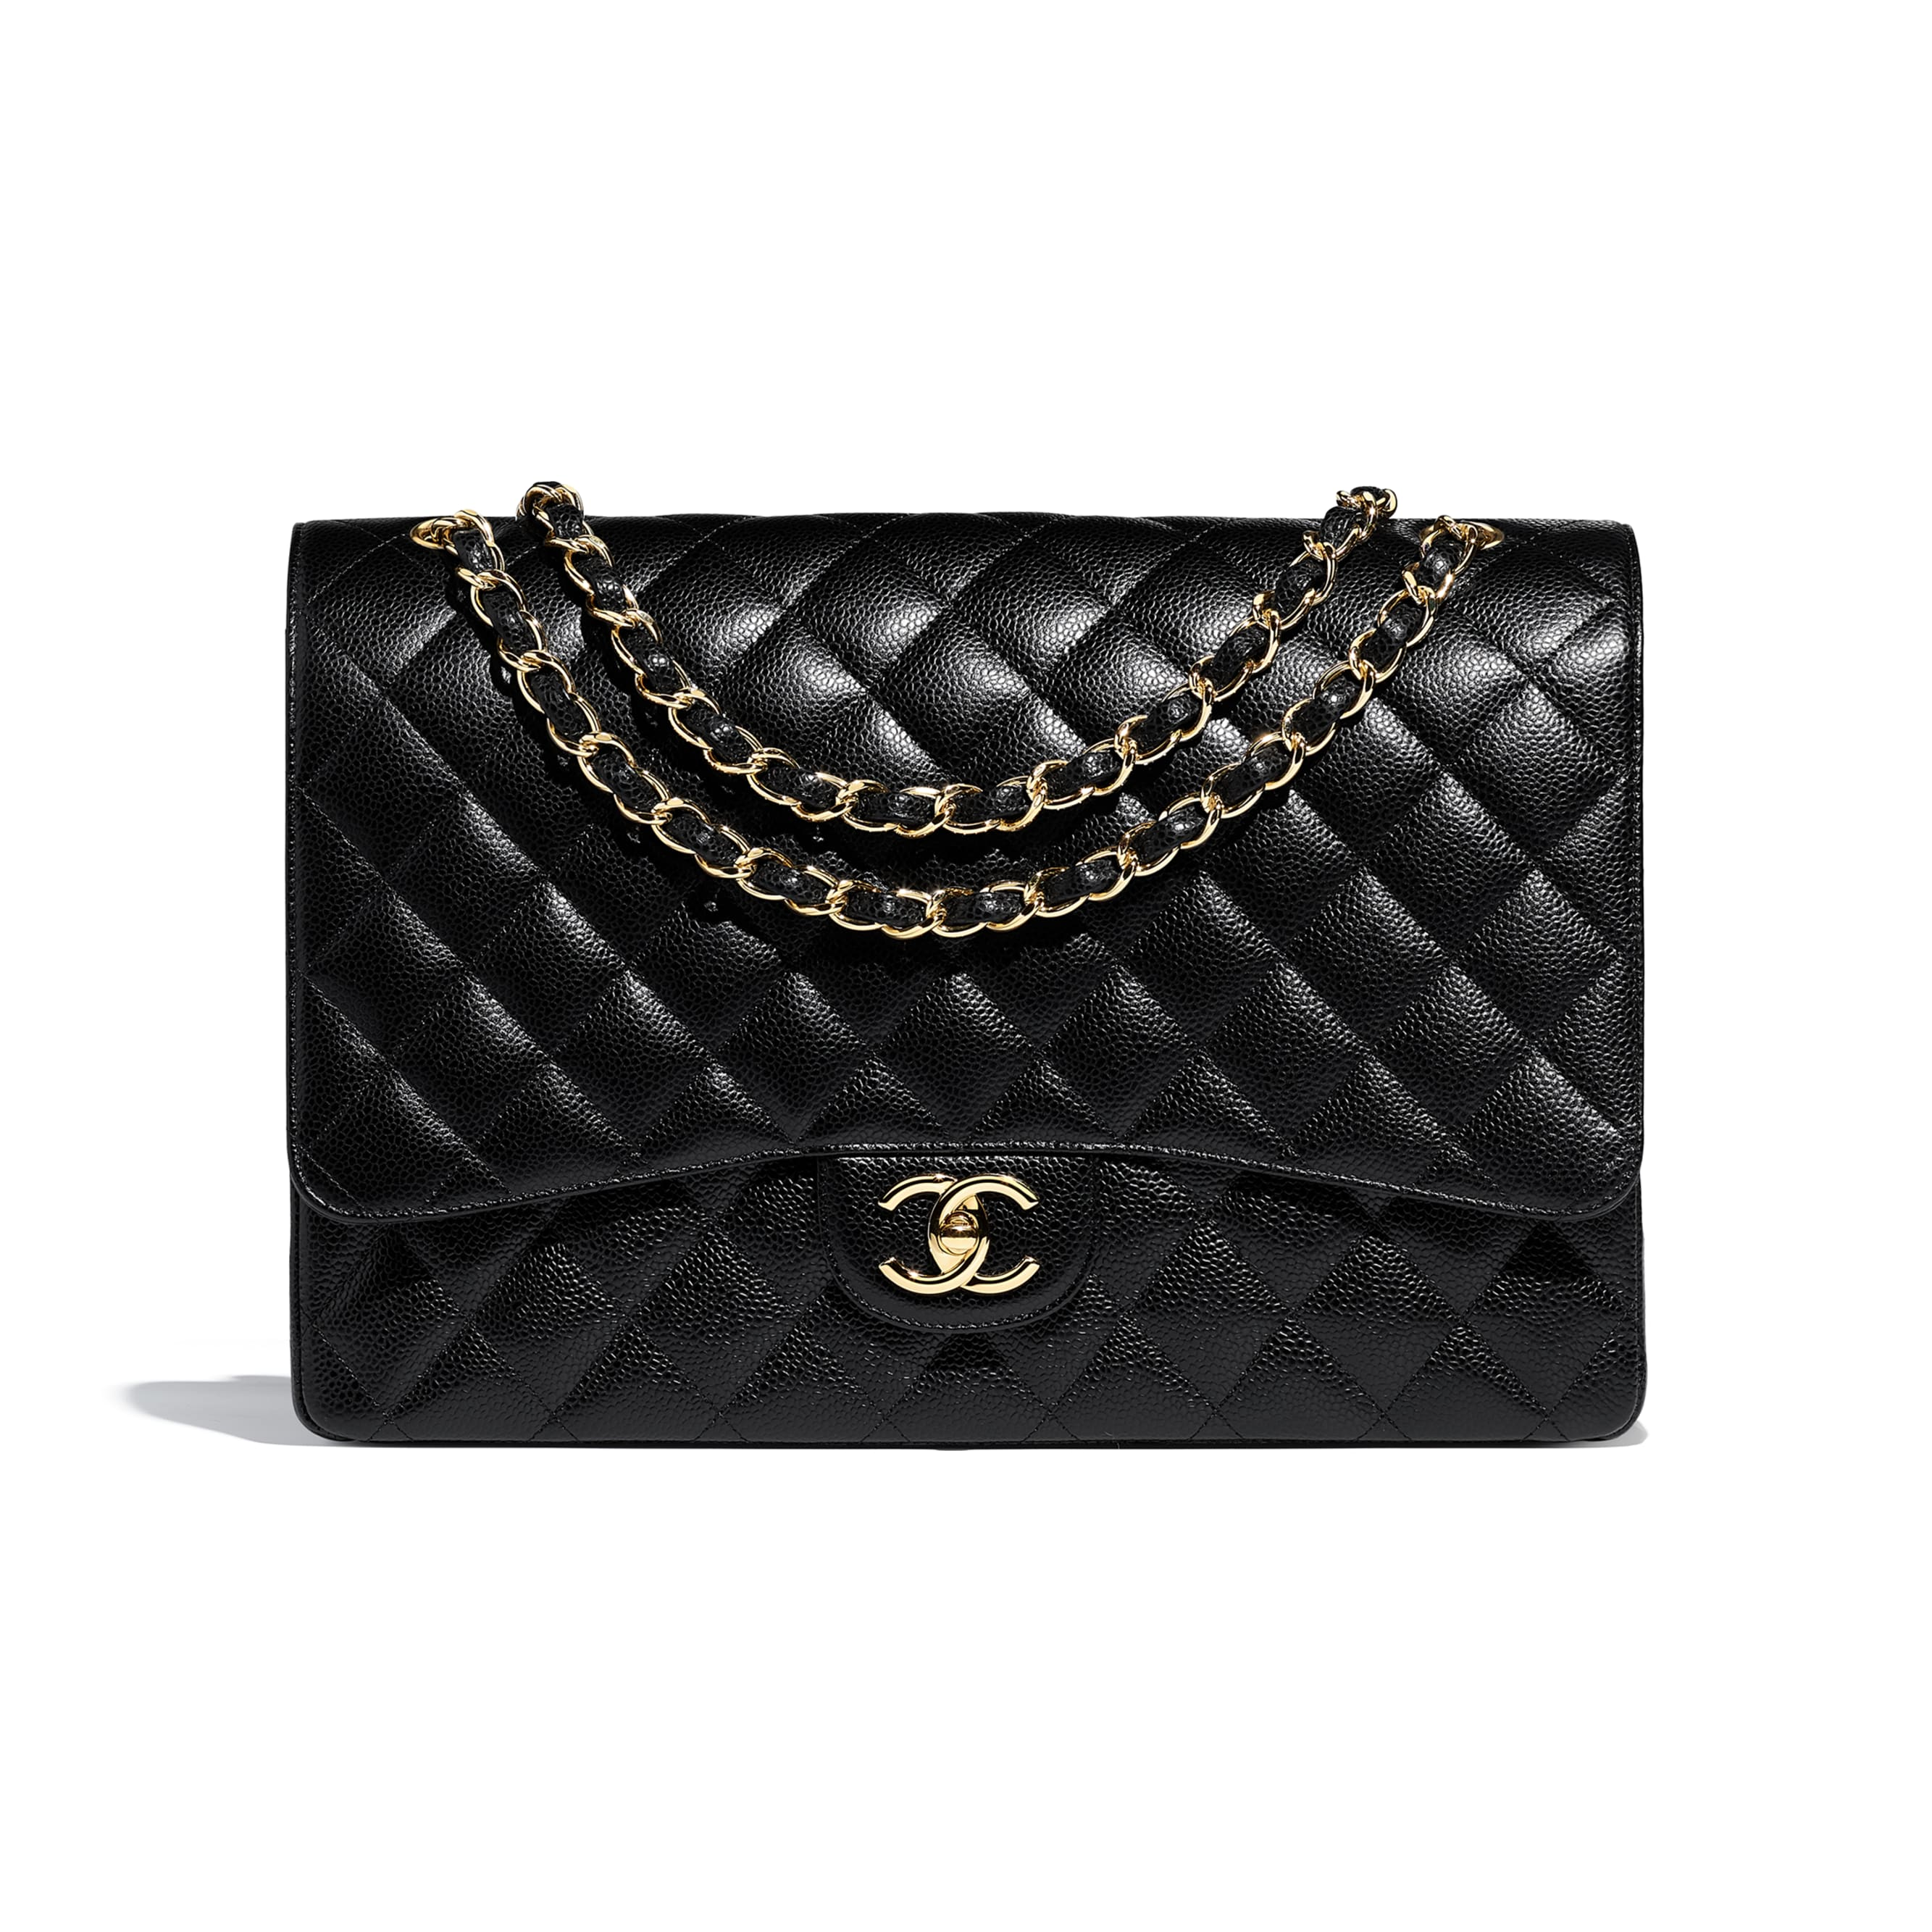 Maxi Classic Handbag - Black - Grained Calfskin & Gold-Tone Metal - Default view - see standard sized version